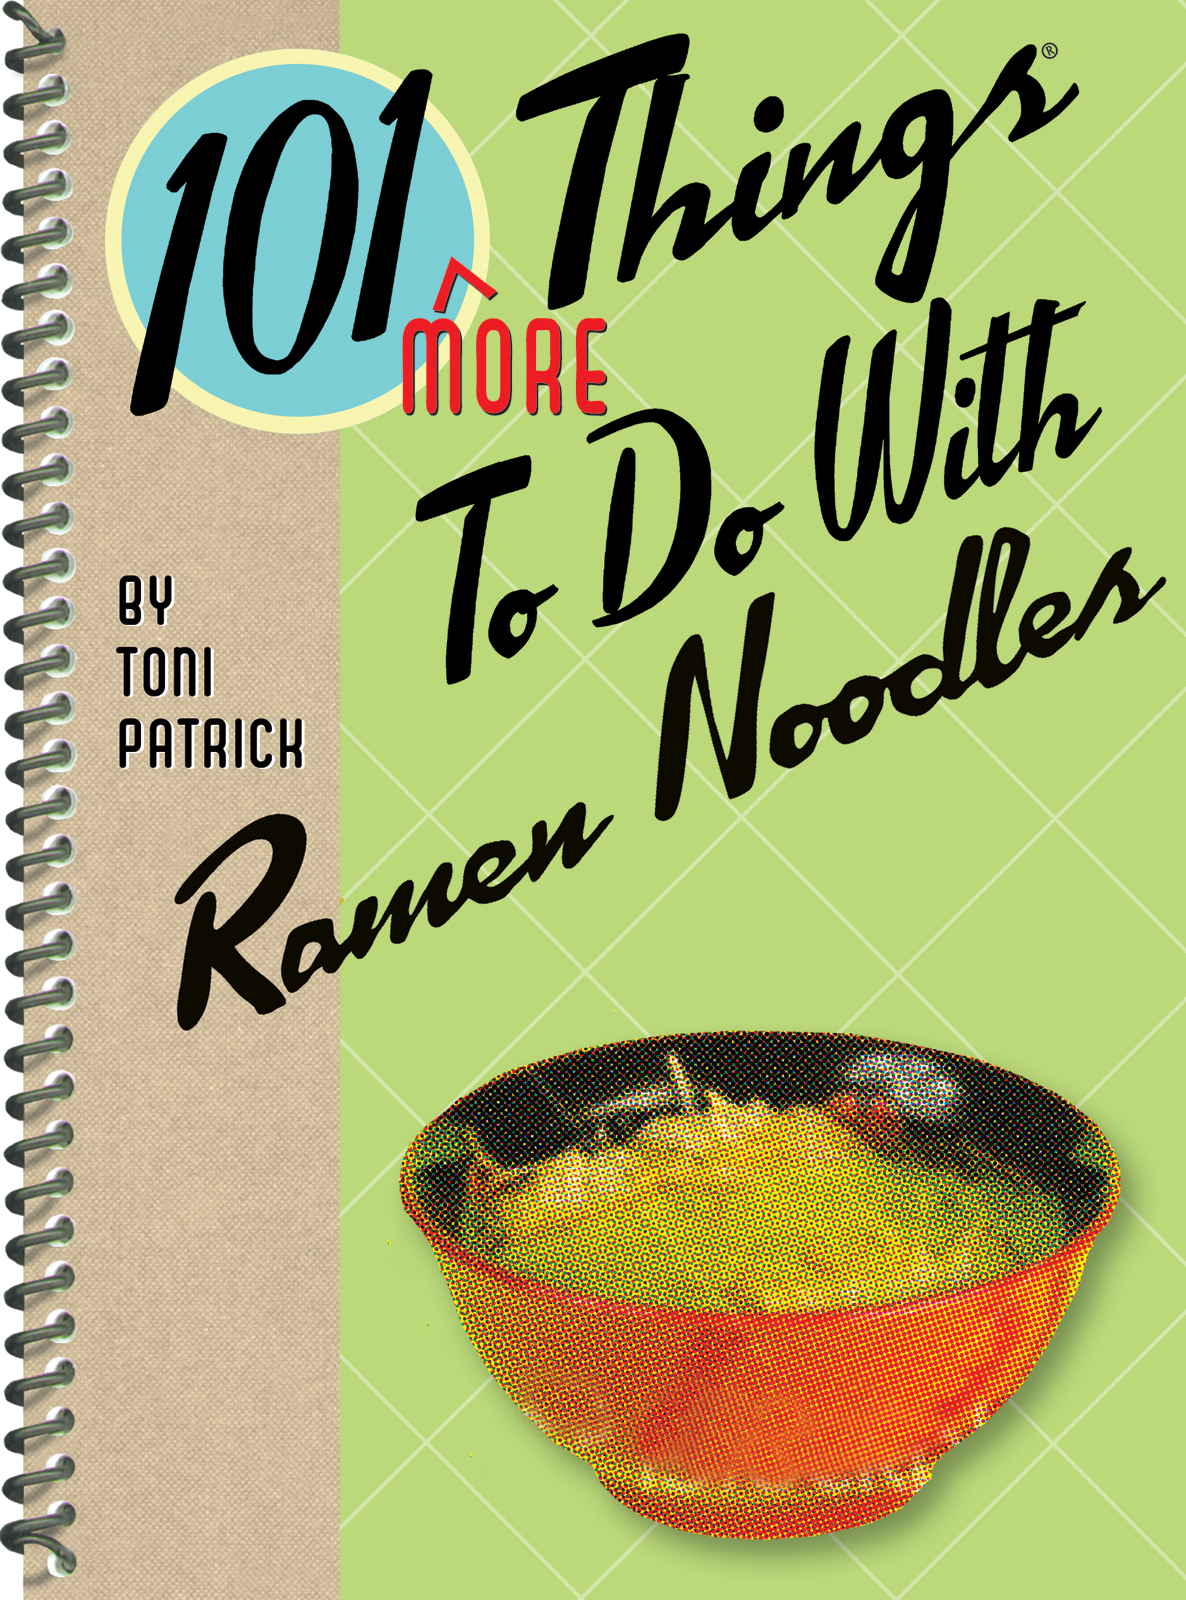 101 More Things To Do With Ramen Noodles By: Toni Patrick